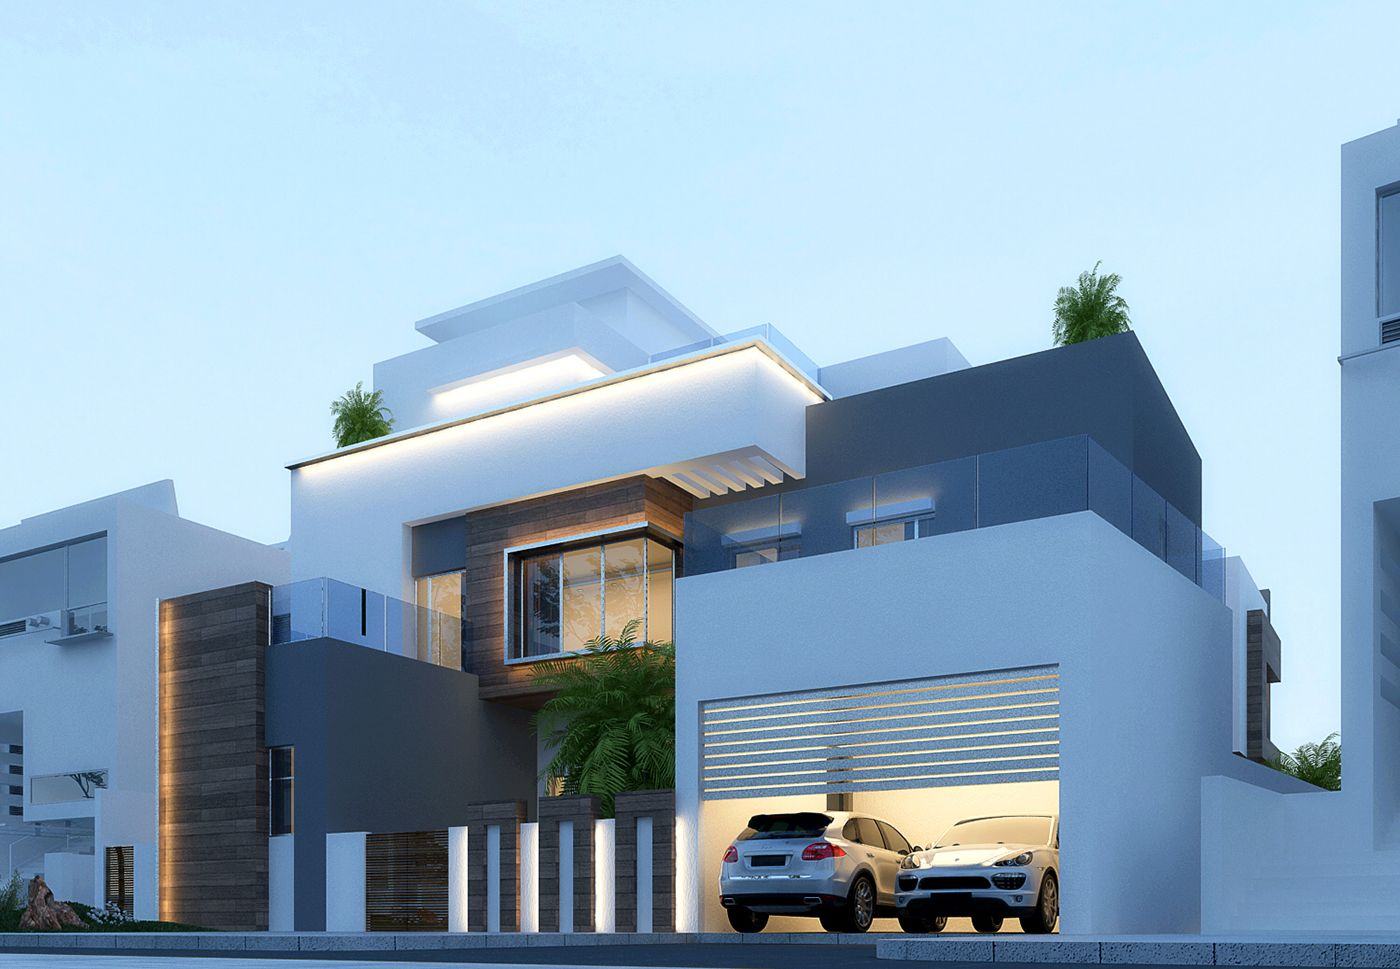 3ds max vray and photoshop 3ds max modern house design dubai photoshop